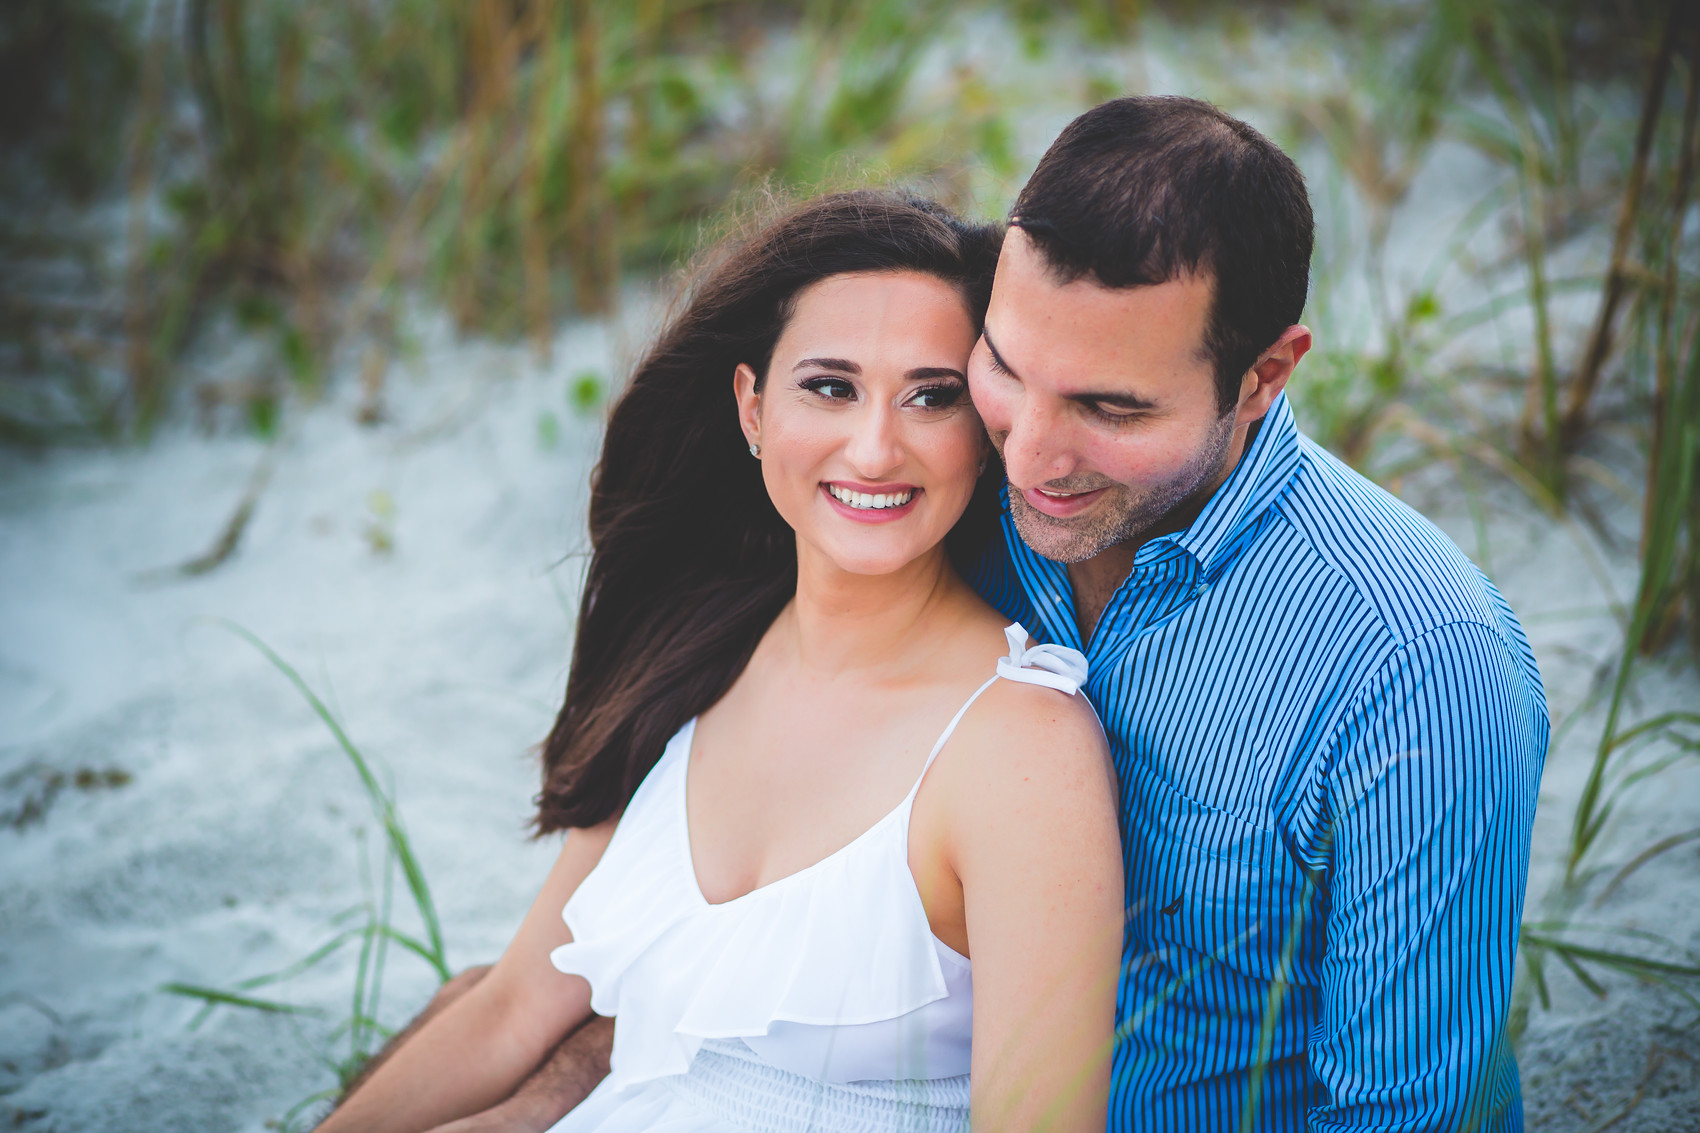 adam-szarmack-atlantic-beach-engagement-photographer-12.jpg